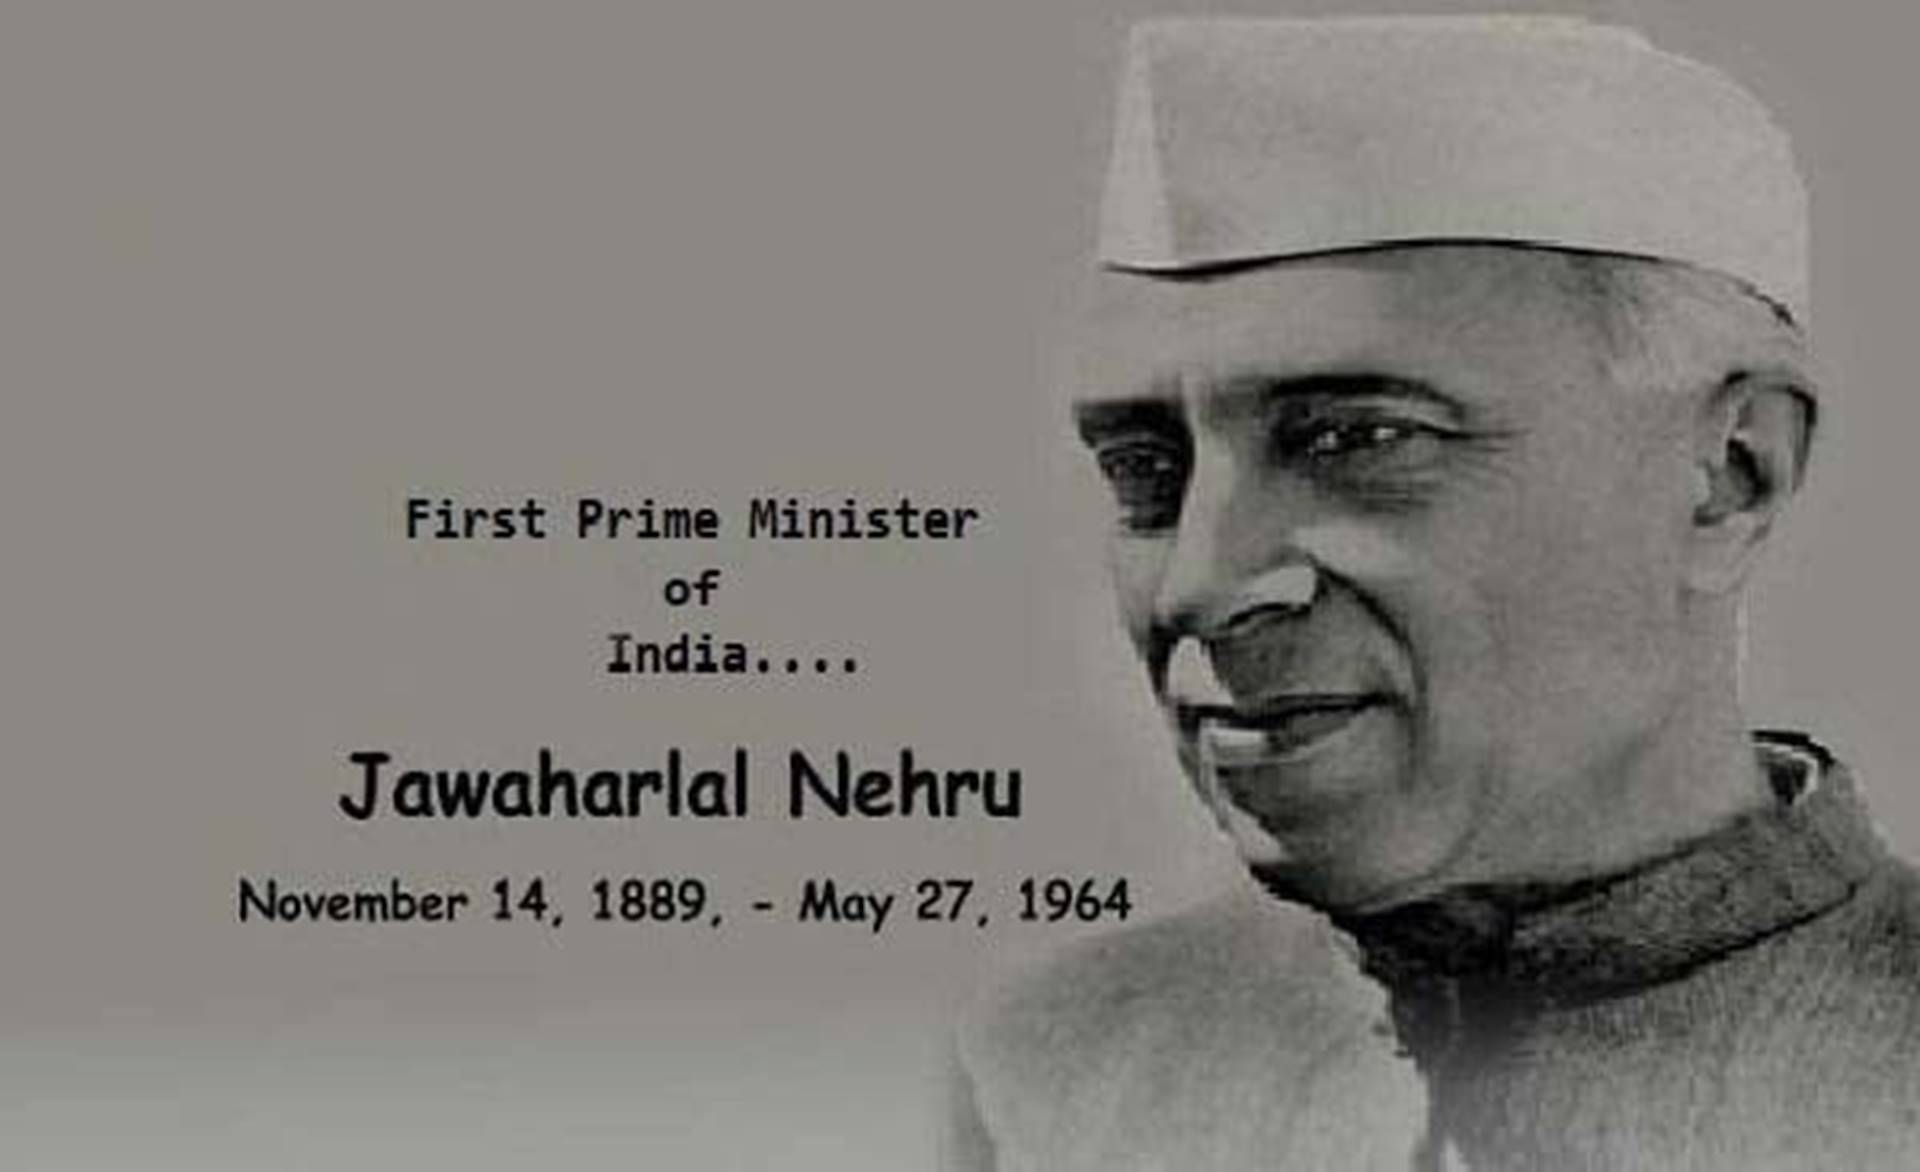 NOVEMBER 14, 1962 – FIRST PRIME MINISTER OF INDIA SHARES HIS